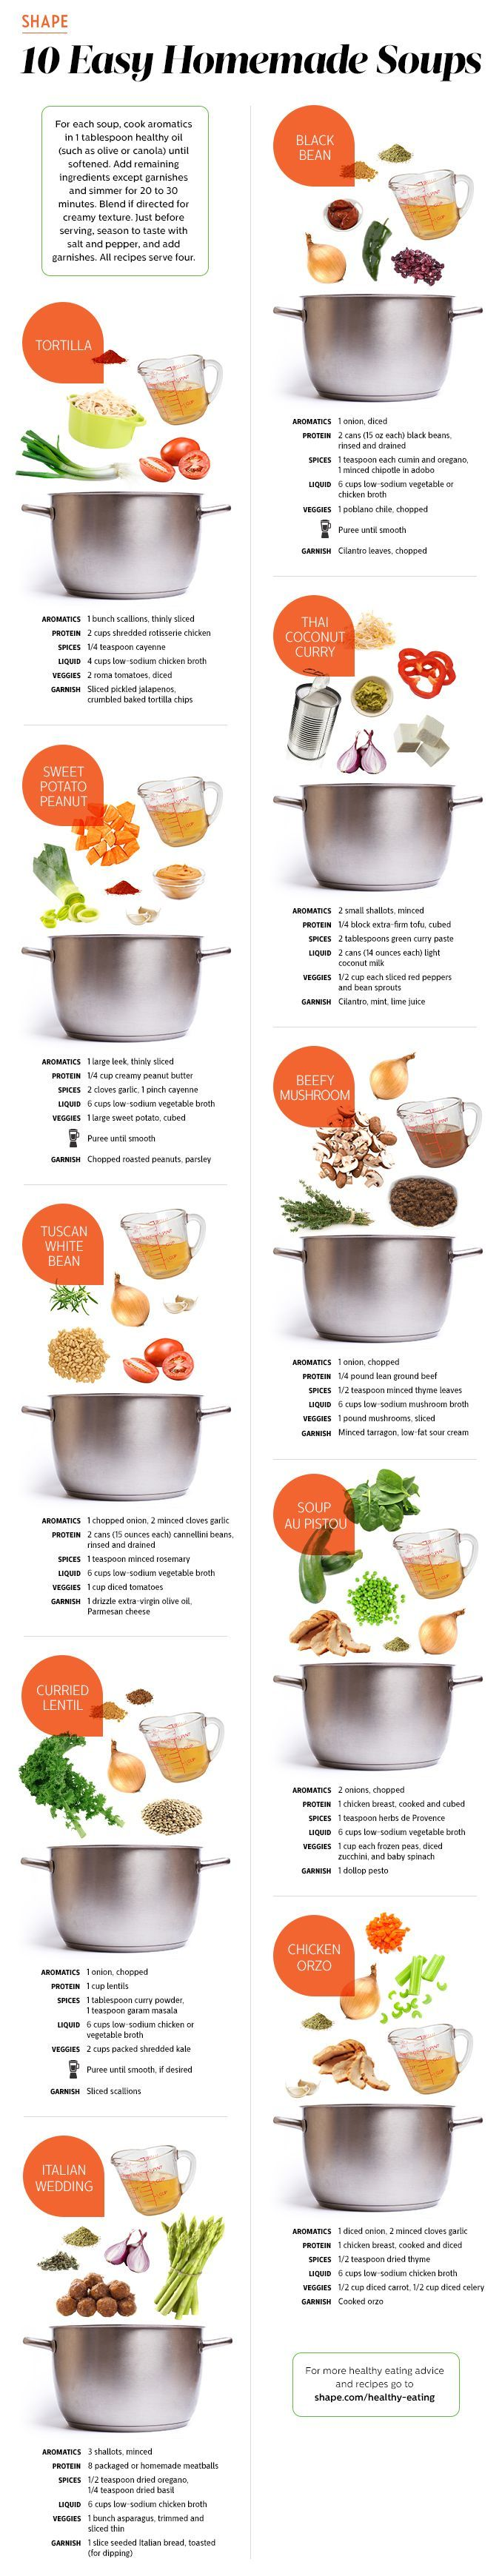 10 Healthy & Easy Homemade Soups by shape.com #Infographic #Soups